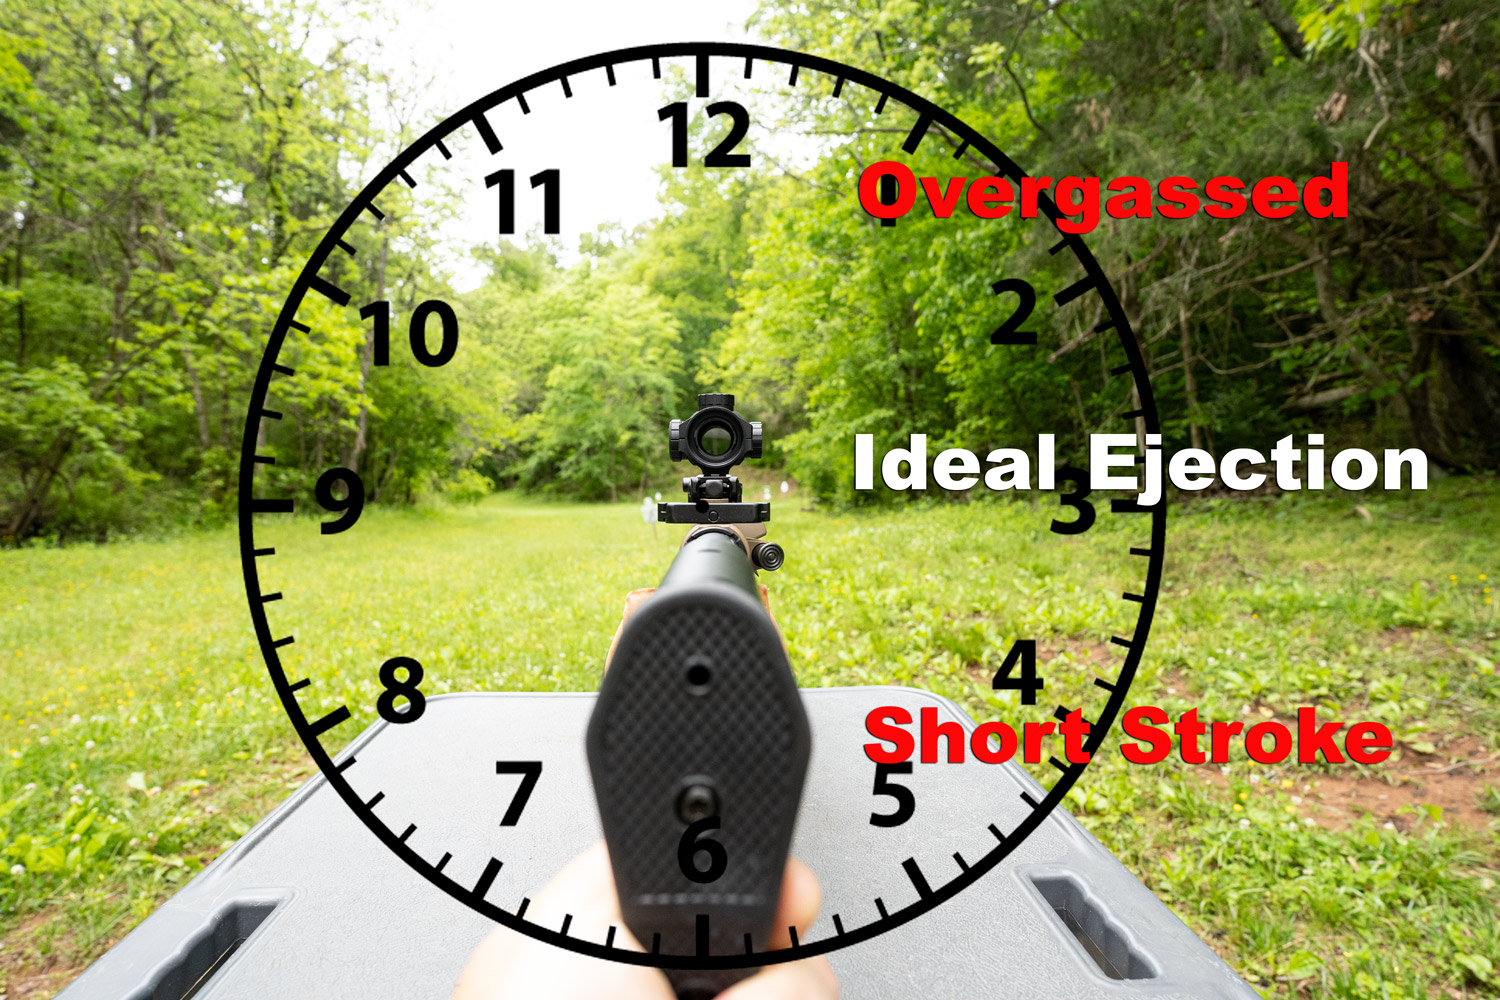 AR15 ejection patterns on a clock